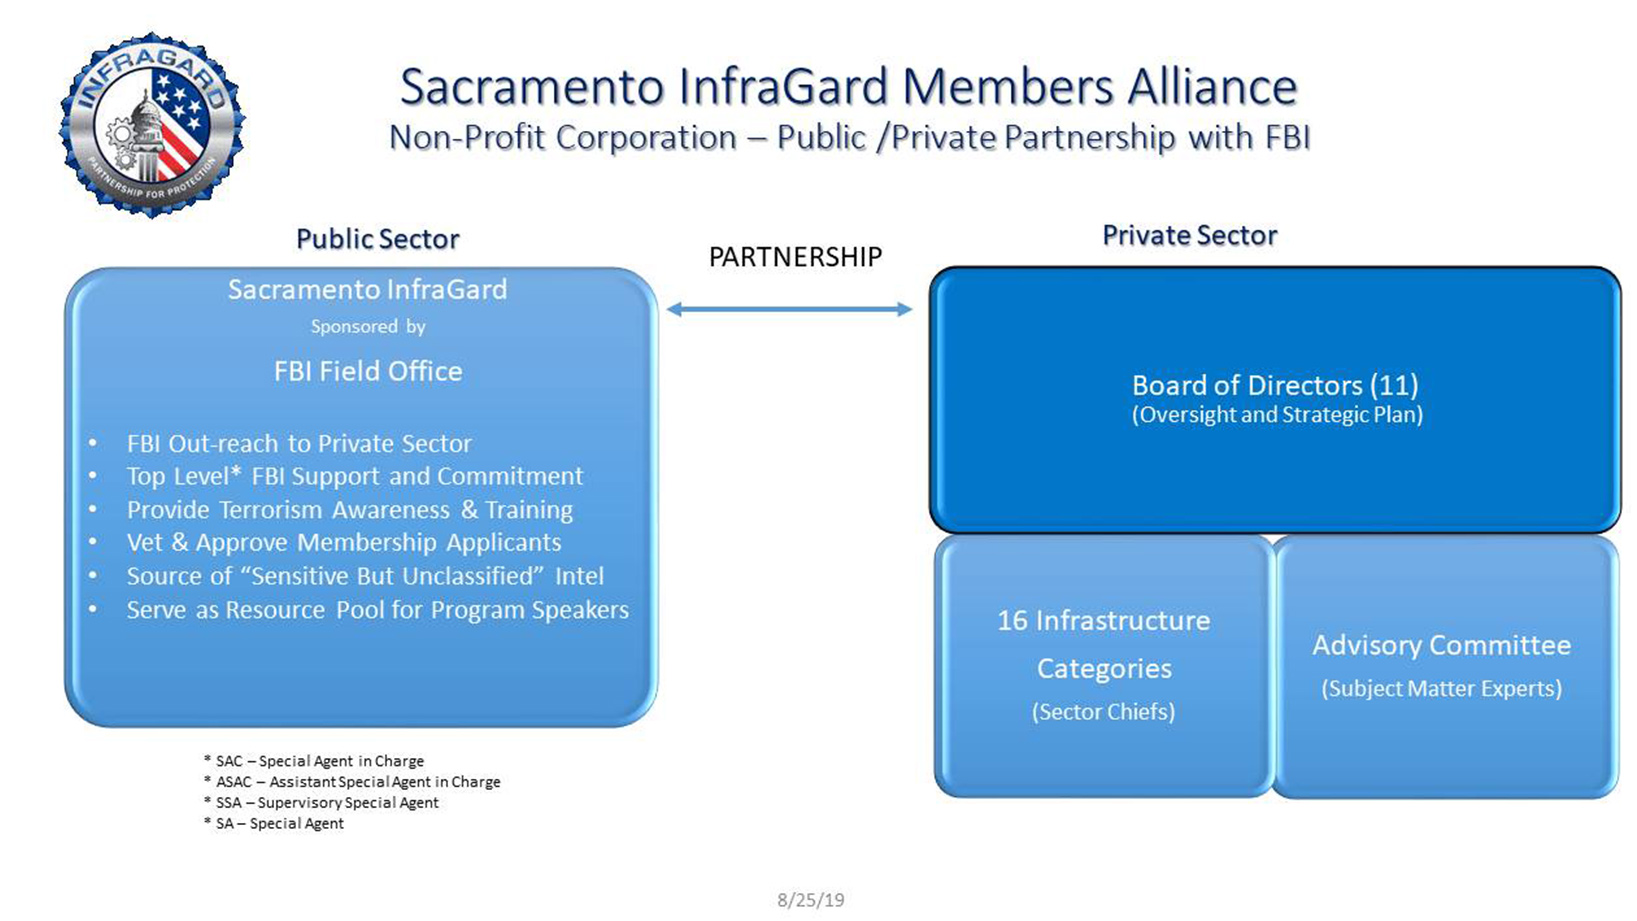 InfraGard Sacramento Members Alliance